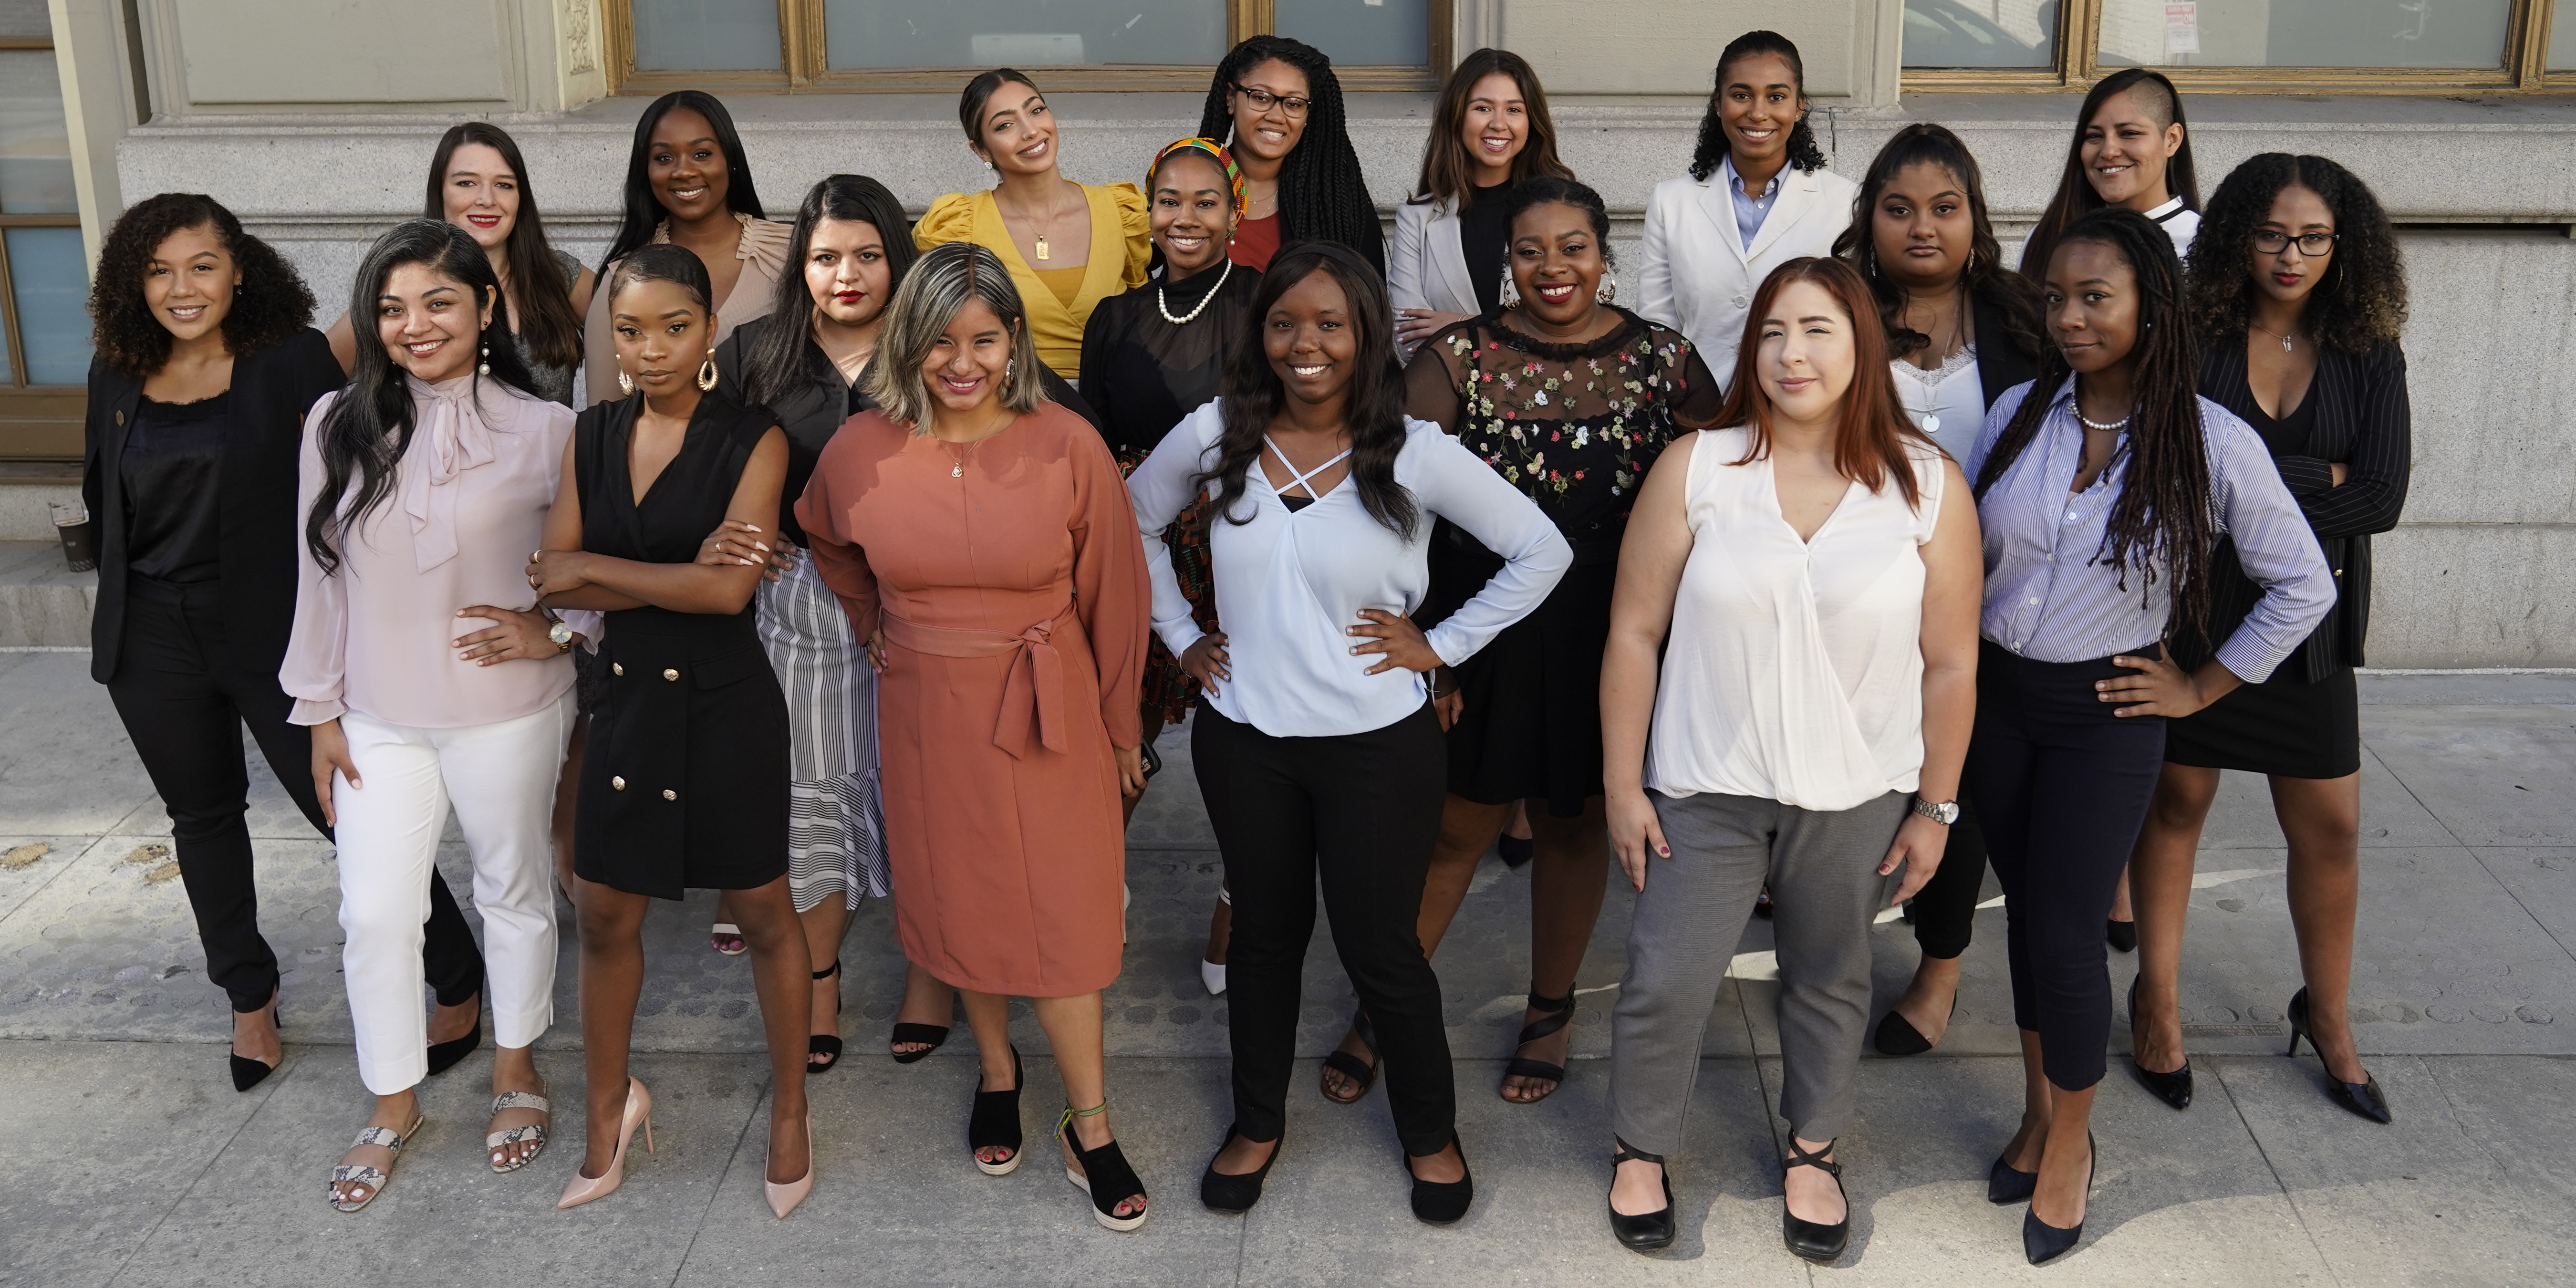 Meet the 4th cohort of IGNITE Fellows